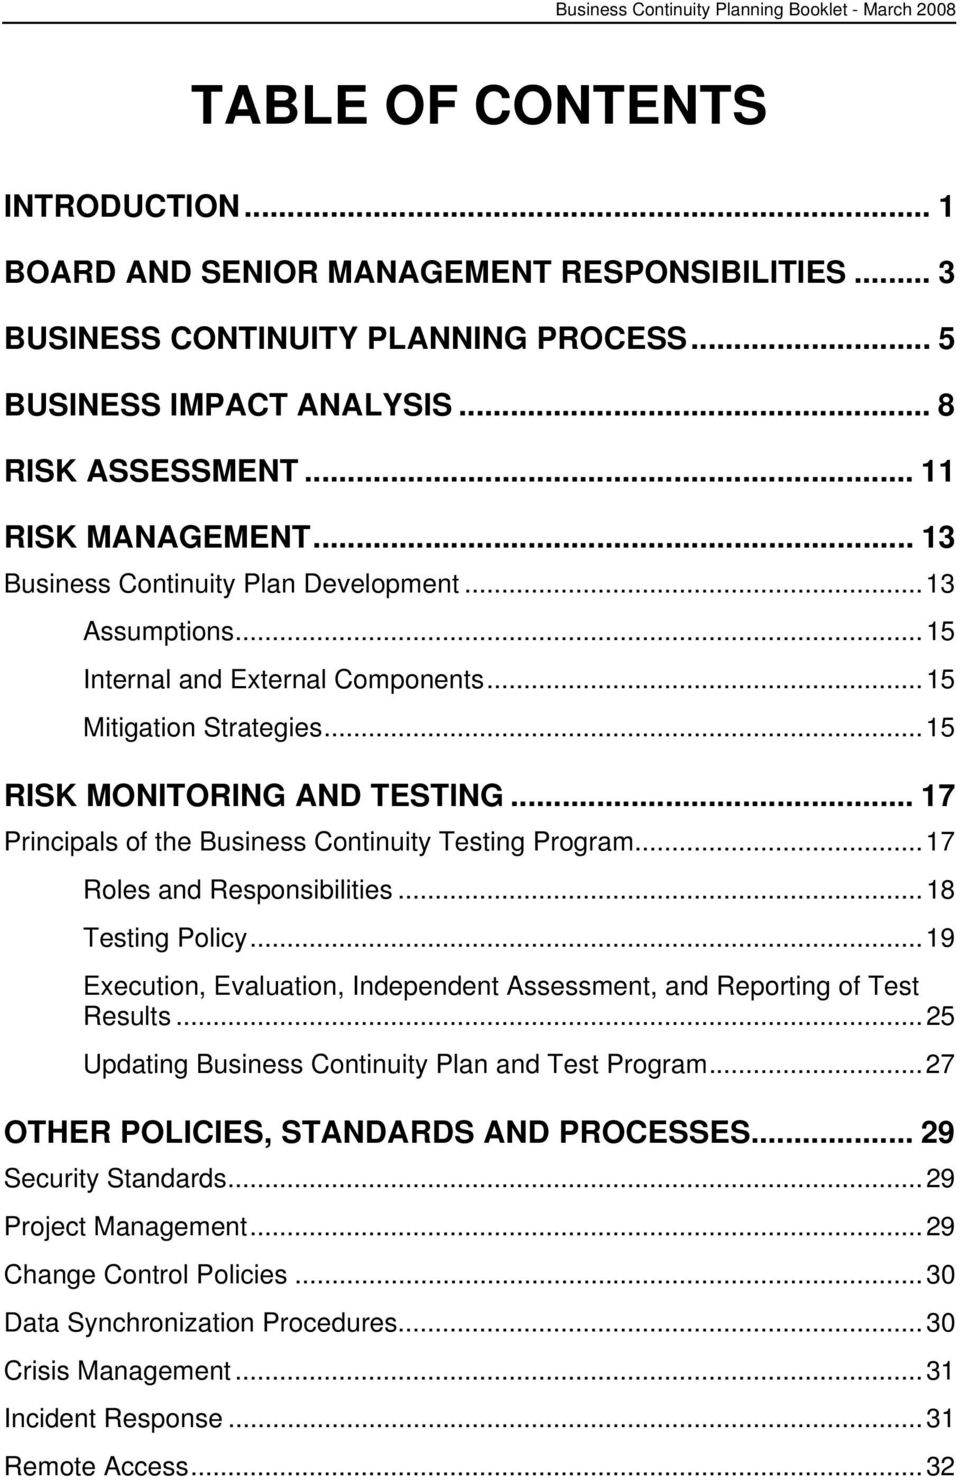 .. 17 Principals of the Business Continuity Testing Program...17 Roles and Responsibilities...18 Testing Policy...19 Execution, Evaluation, Independent Assessment, and Reporting of Test Results.